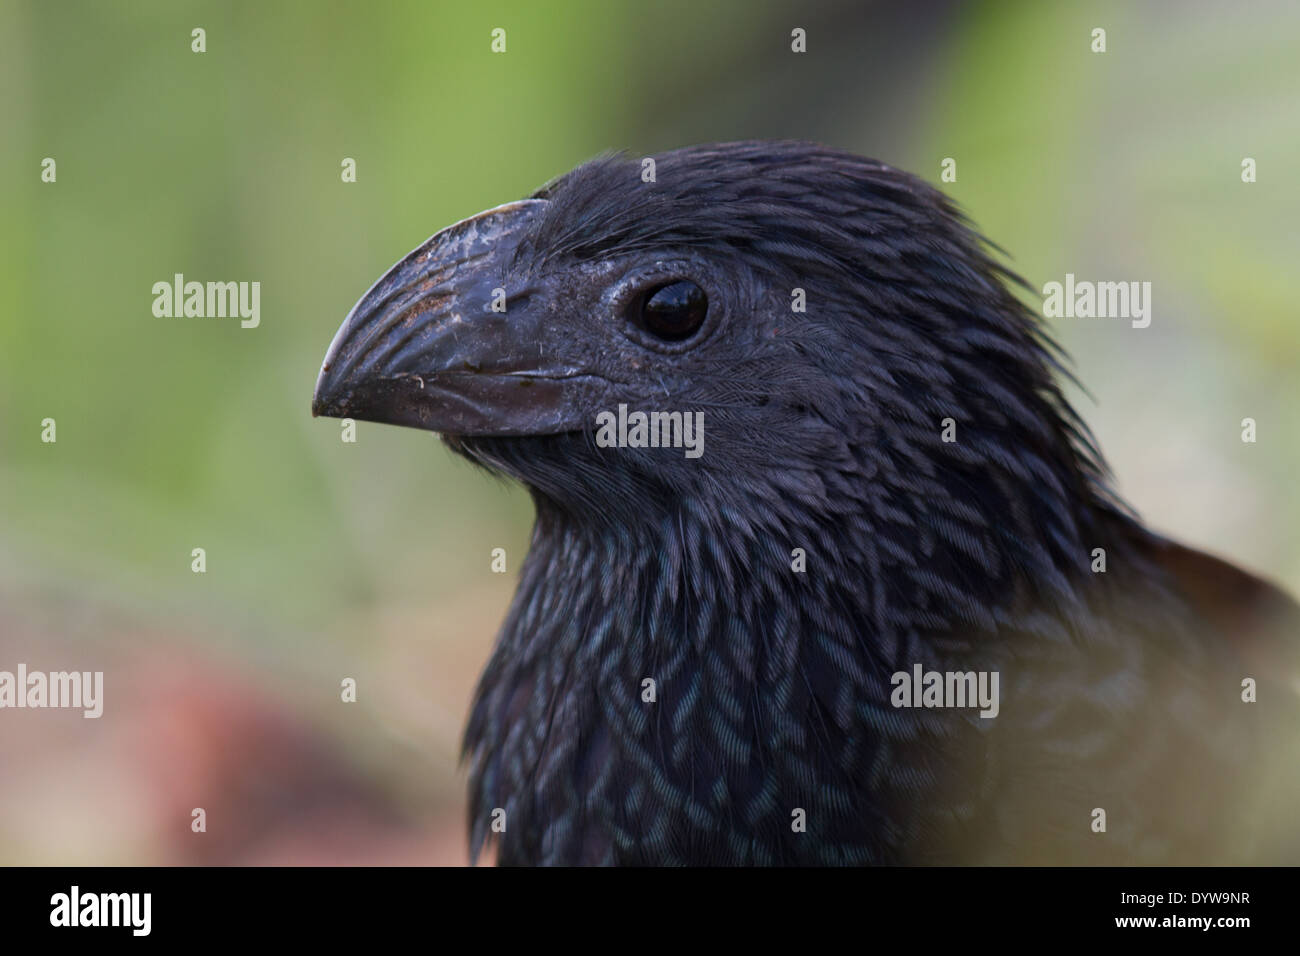 Groove-billed Ani (Crotophaga sulcirostris) head - Stock Image